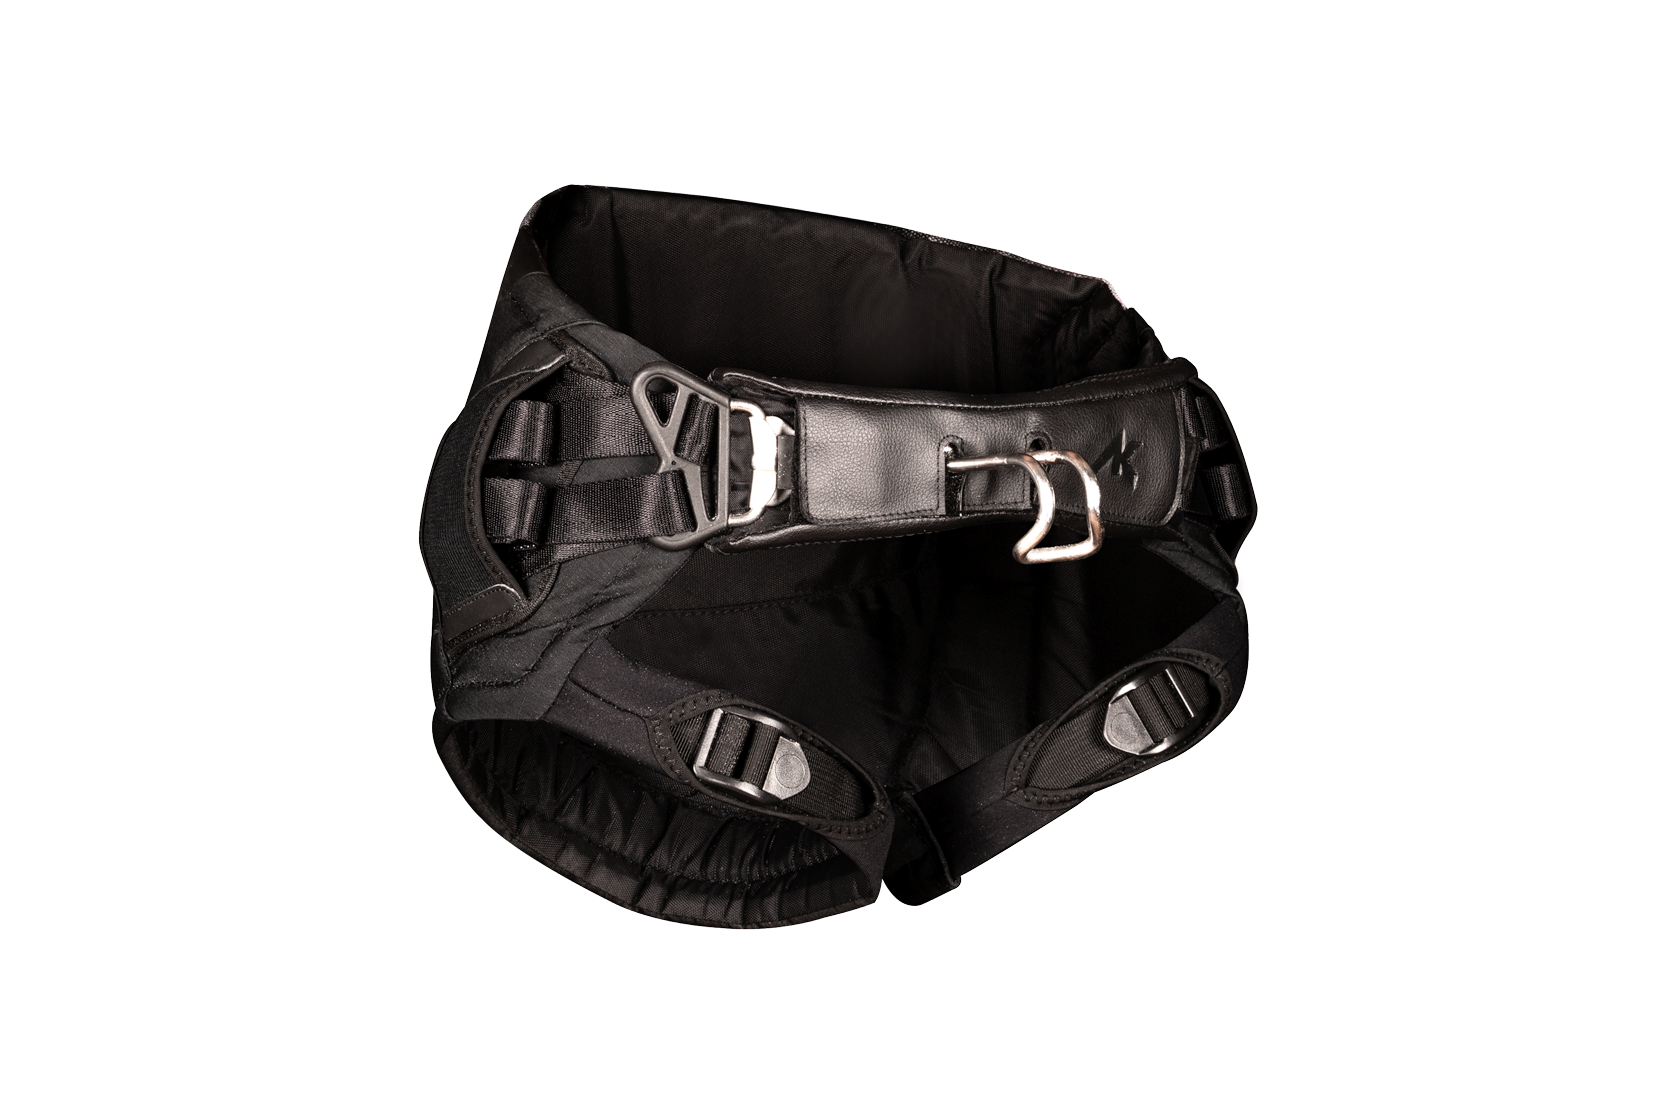 AK_Ether-Seat-Harness-3